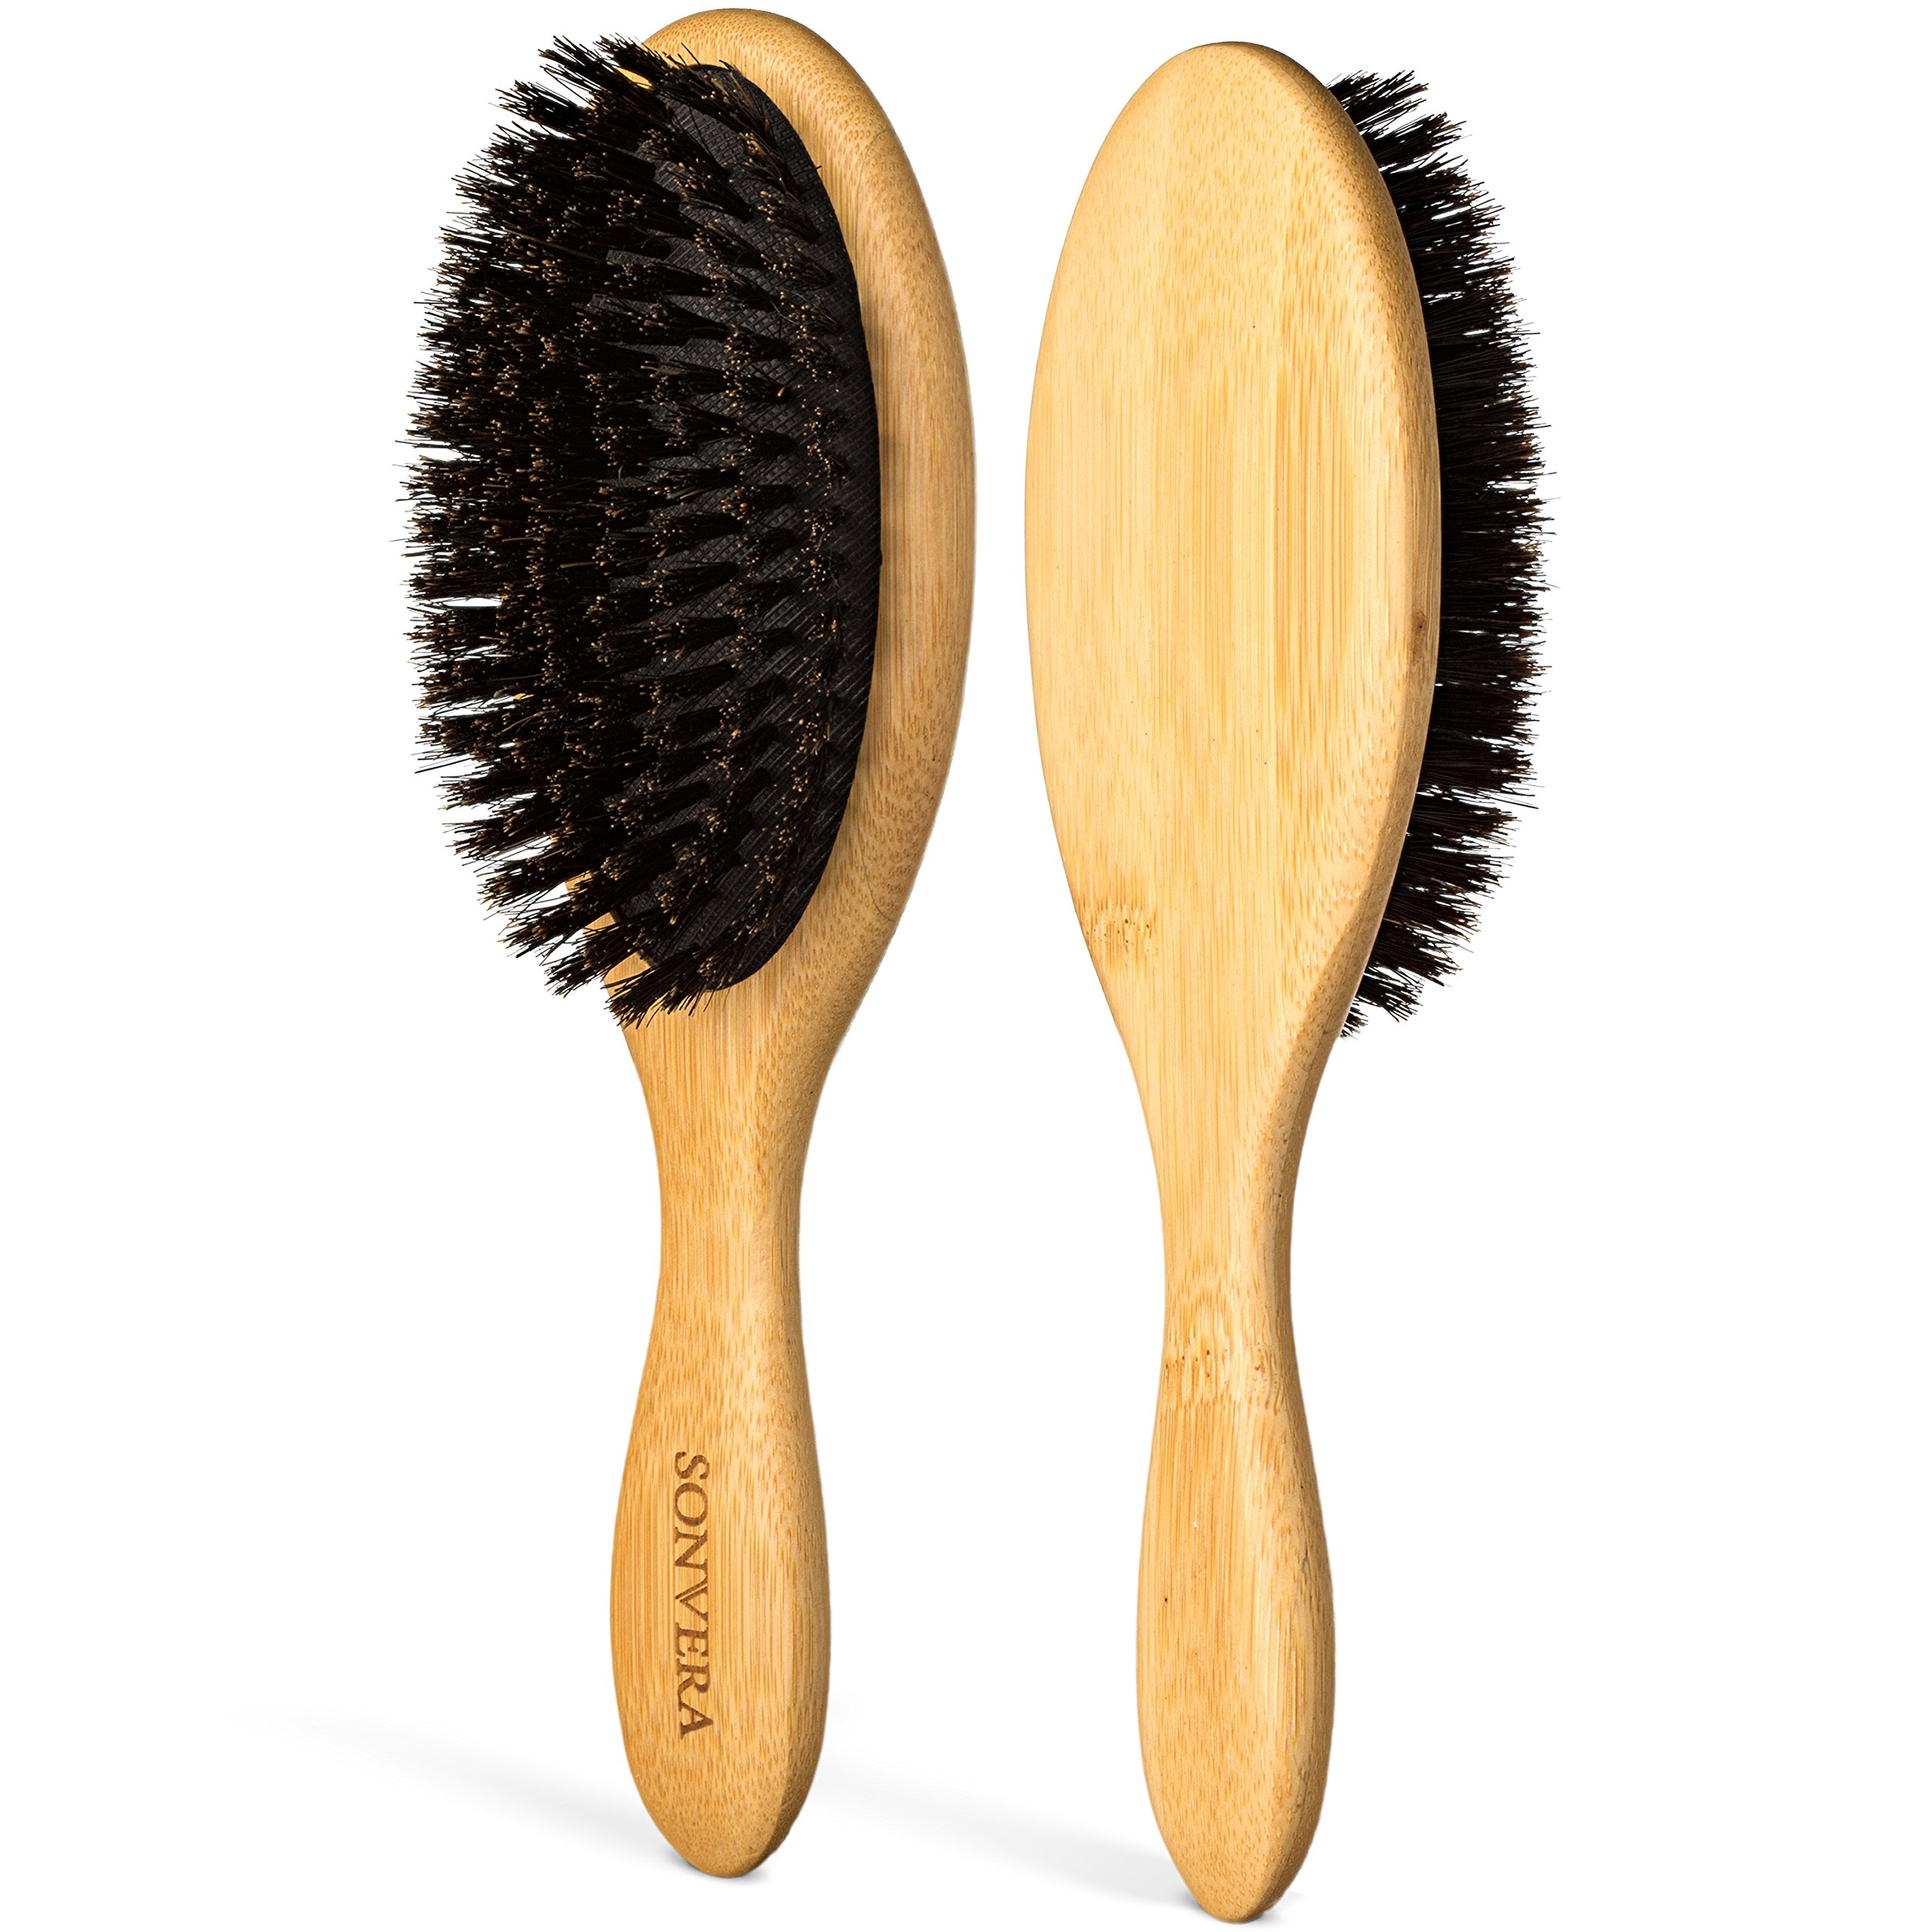 Boar Bristle Hair Brush by Sonvera, Boar Brush, Organic Mens Hair Brush, Boars Hair Brush for Men Women, Soft 100% Natural Bristle Hair Brushes, Round Bamboo (1)